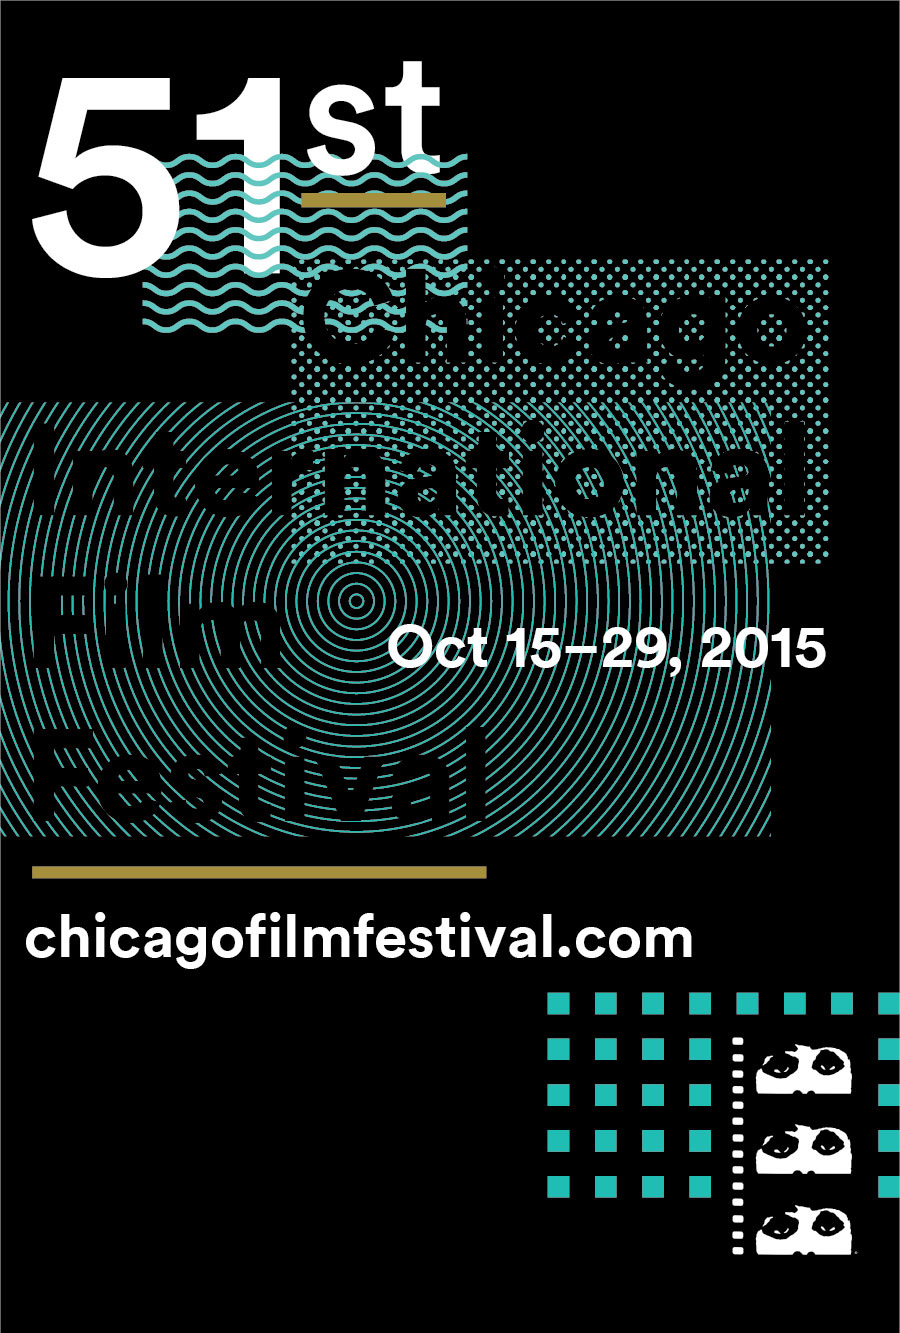 Submission Entry For The 51st Chicago International Film Festival Poster Design Competition Theme Because Everybody Loves Movies